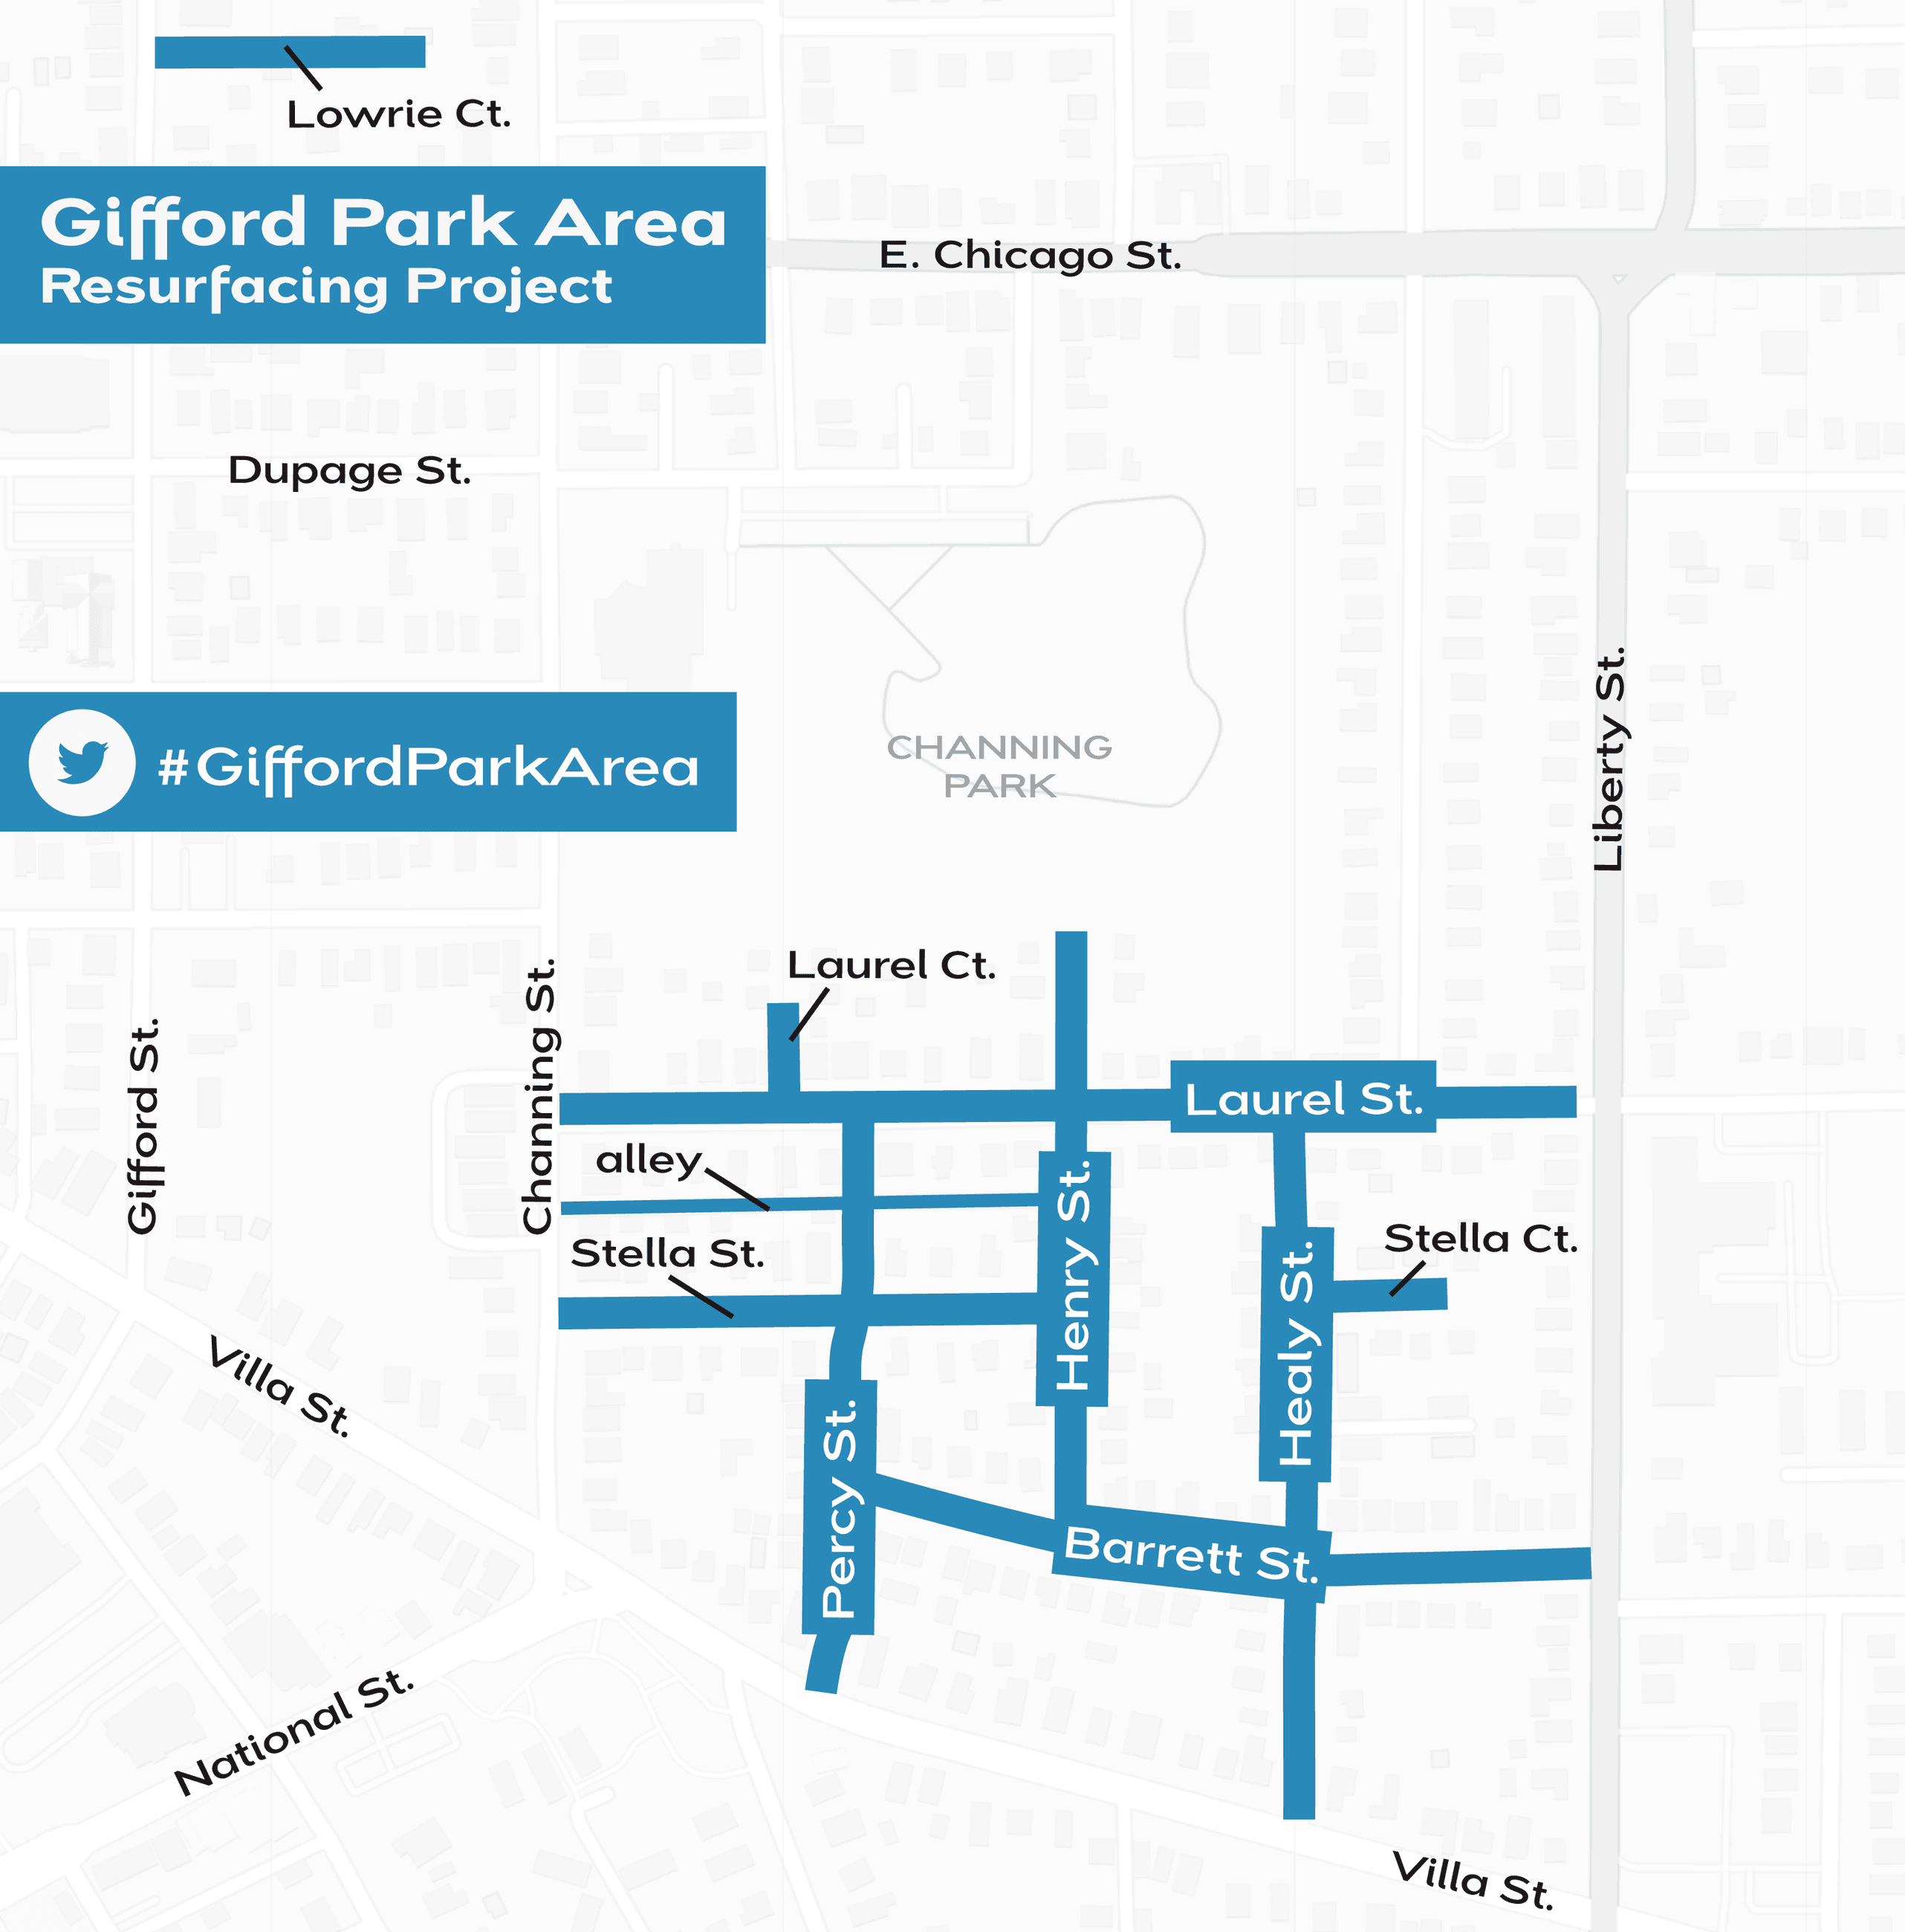 Gifford Park Area resurfacing project map